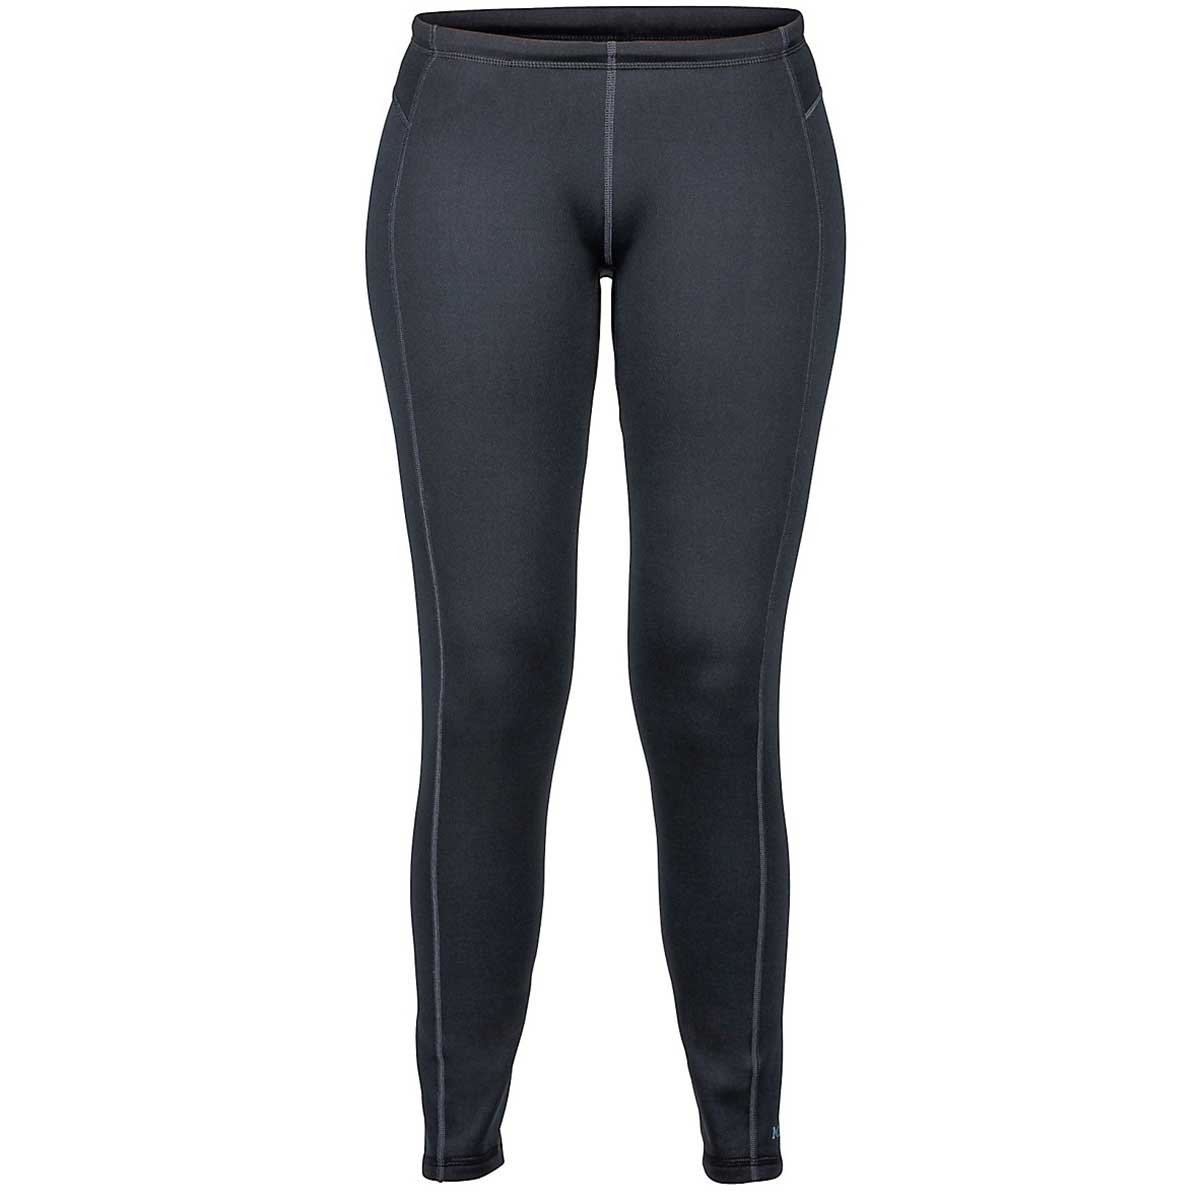 Marmot Women's Stretch Fleece Pant in Black